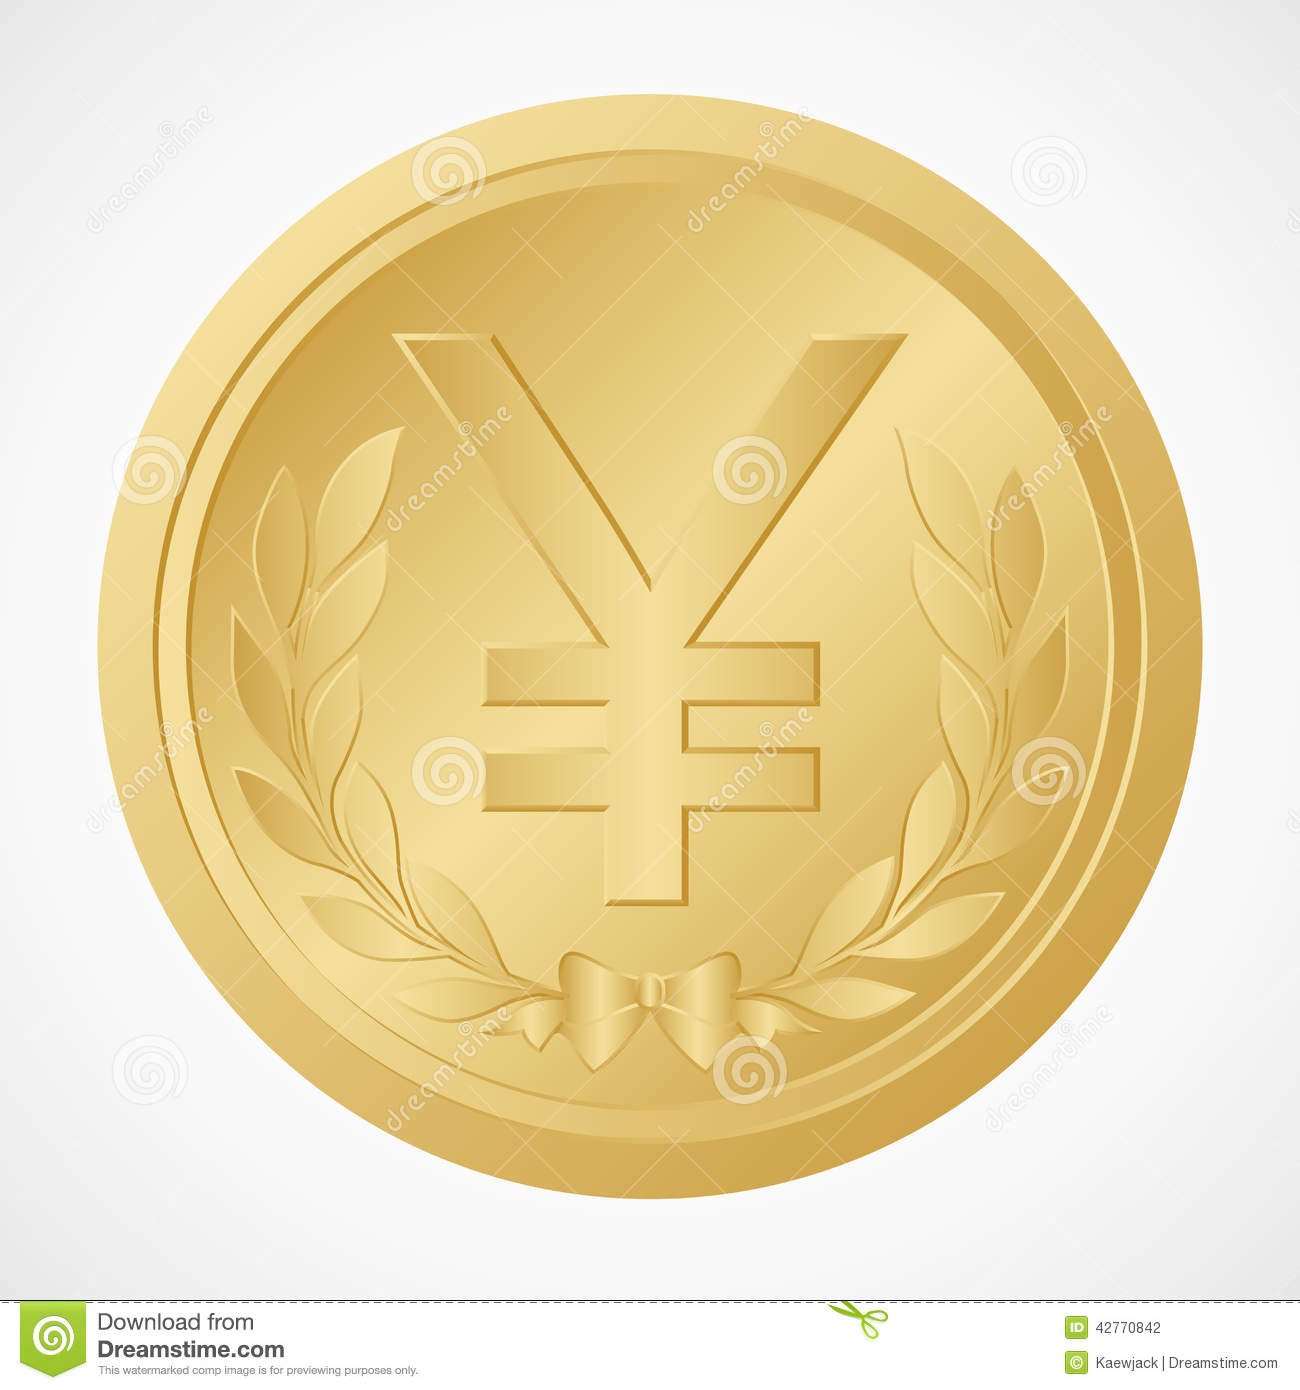 Gold yen coin with yuan symbol chinese money vector and gold yen coin with yuan symbol chinese money vector and illustration biocorpaavc